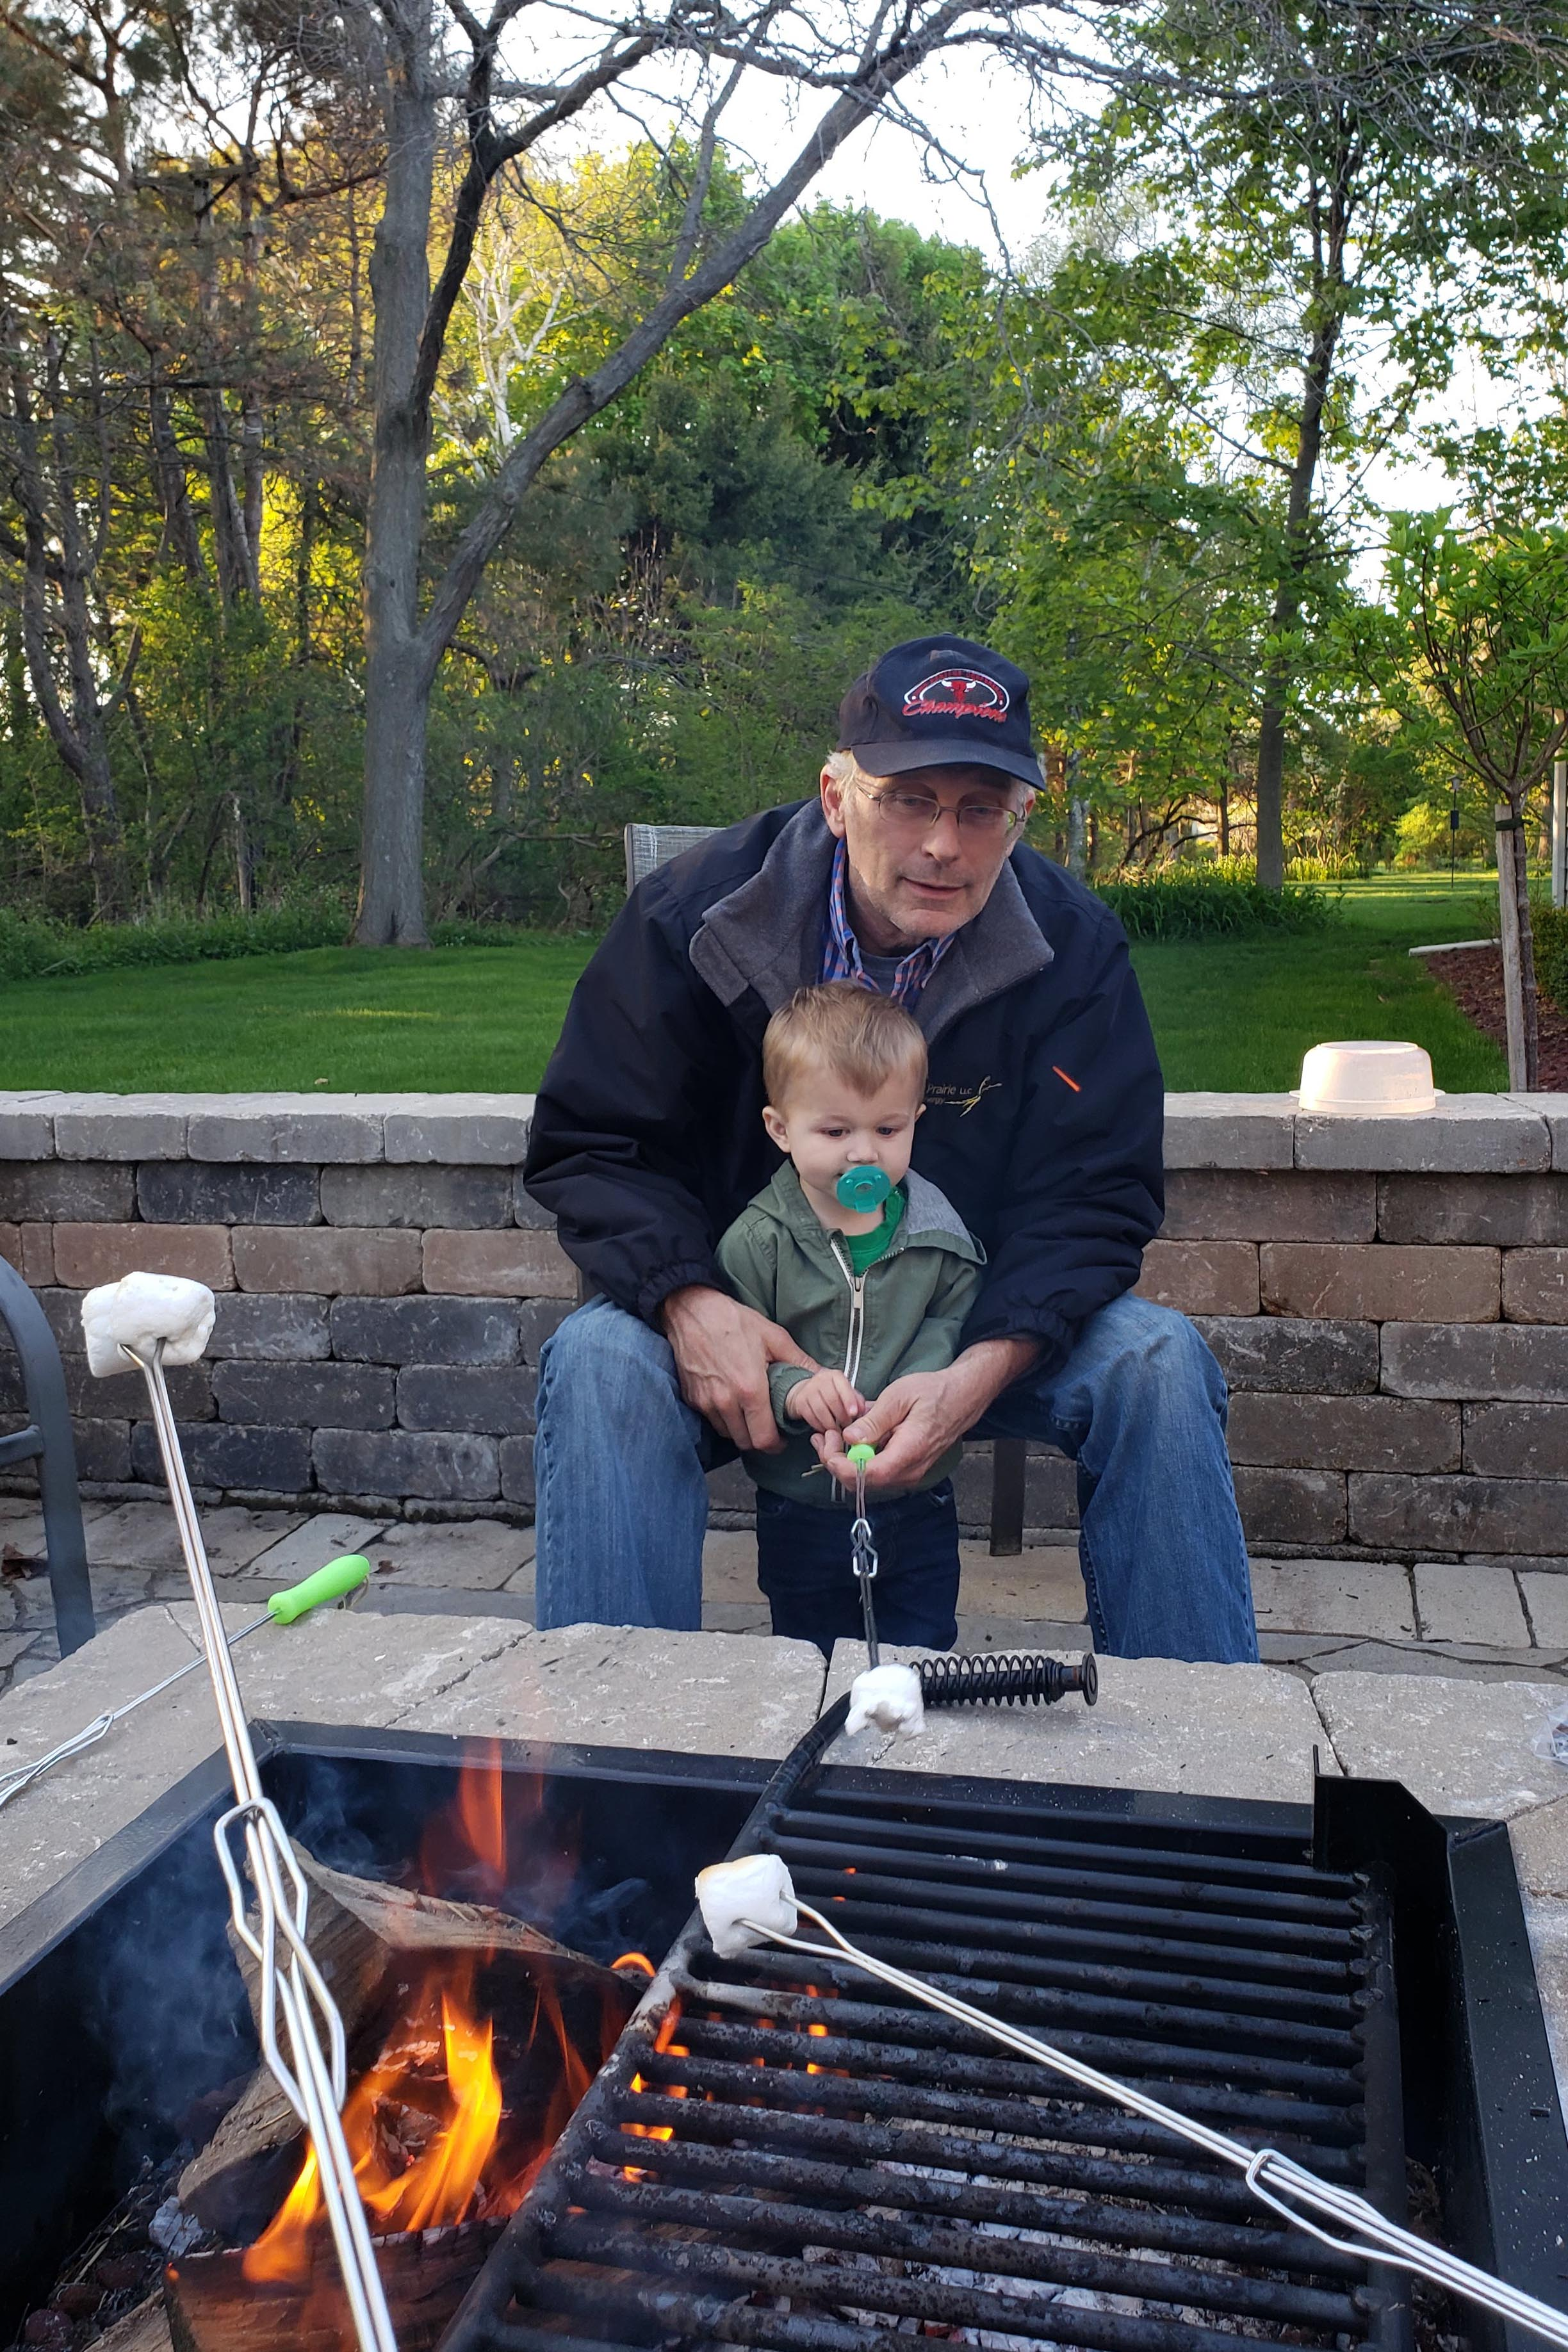 Memorial Day Weekend 2019 #MemorialDay #family #smores | https://www.roseclearfield.com